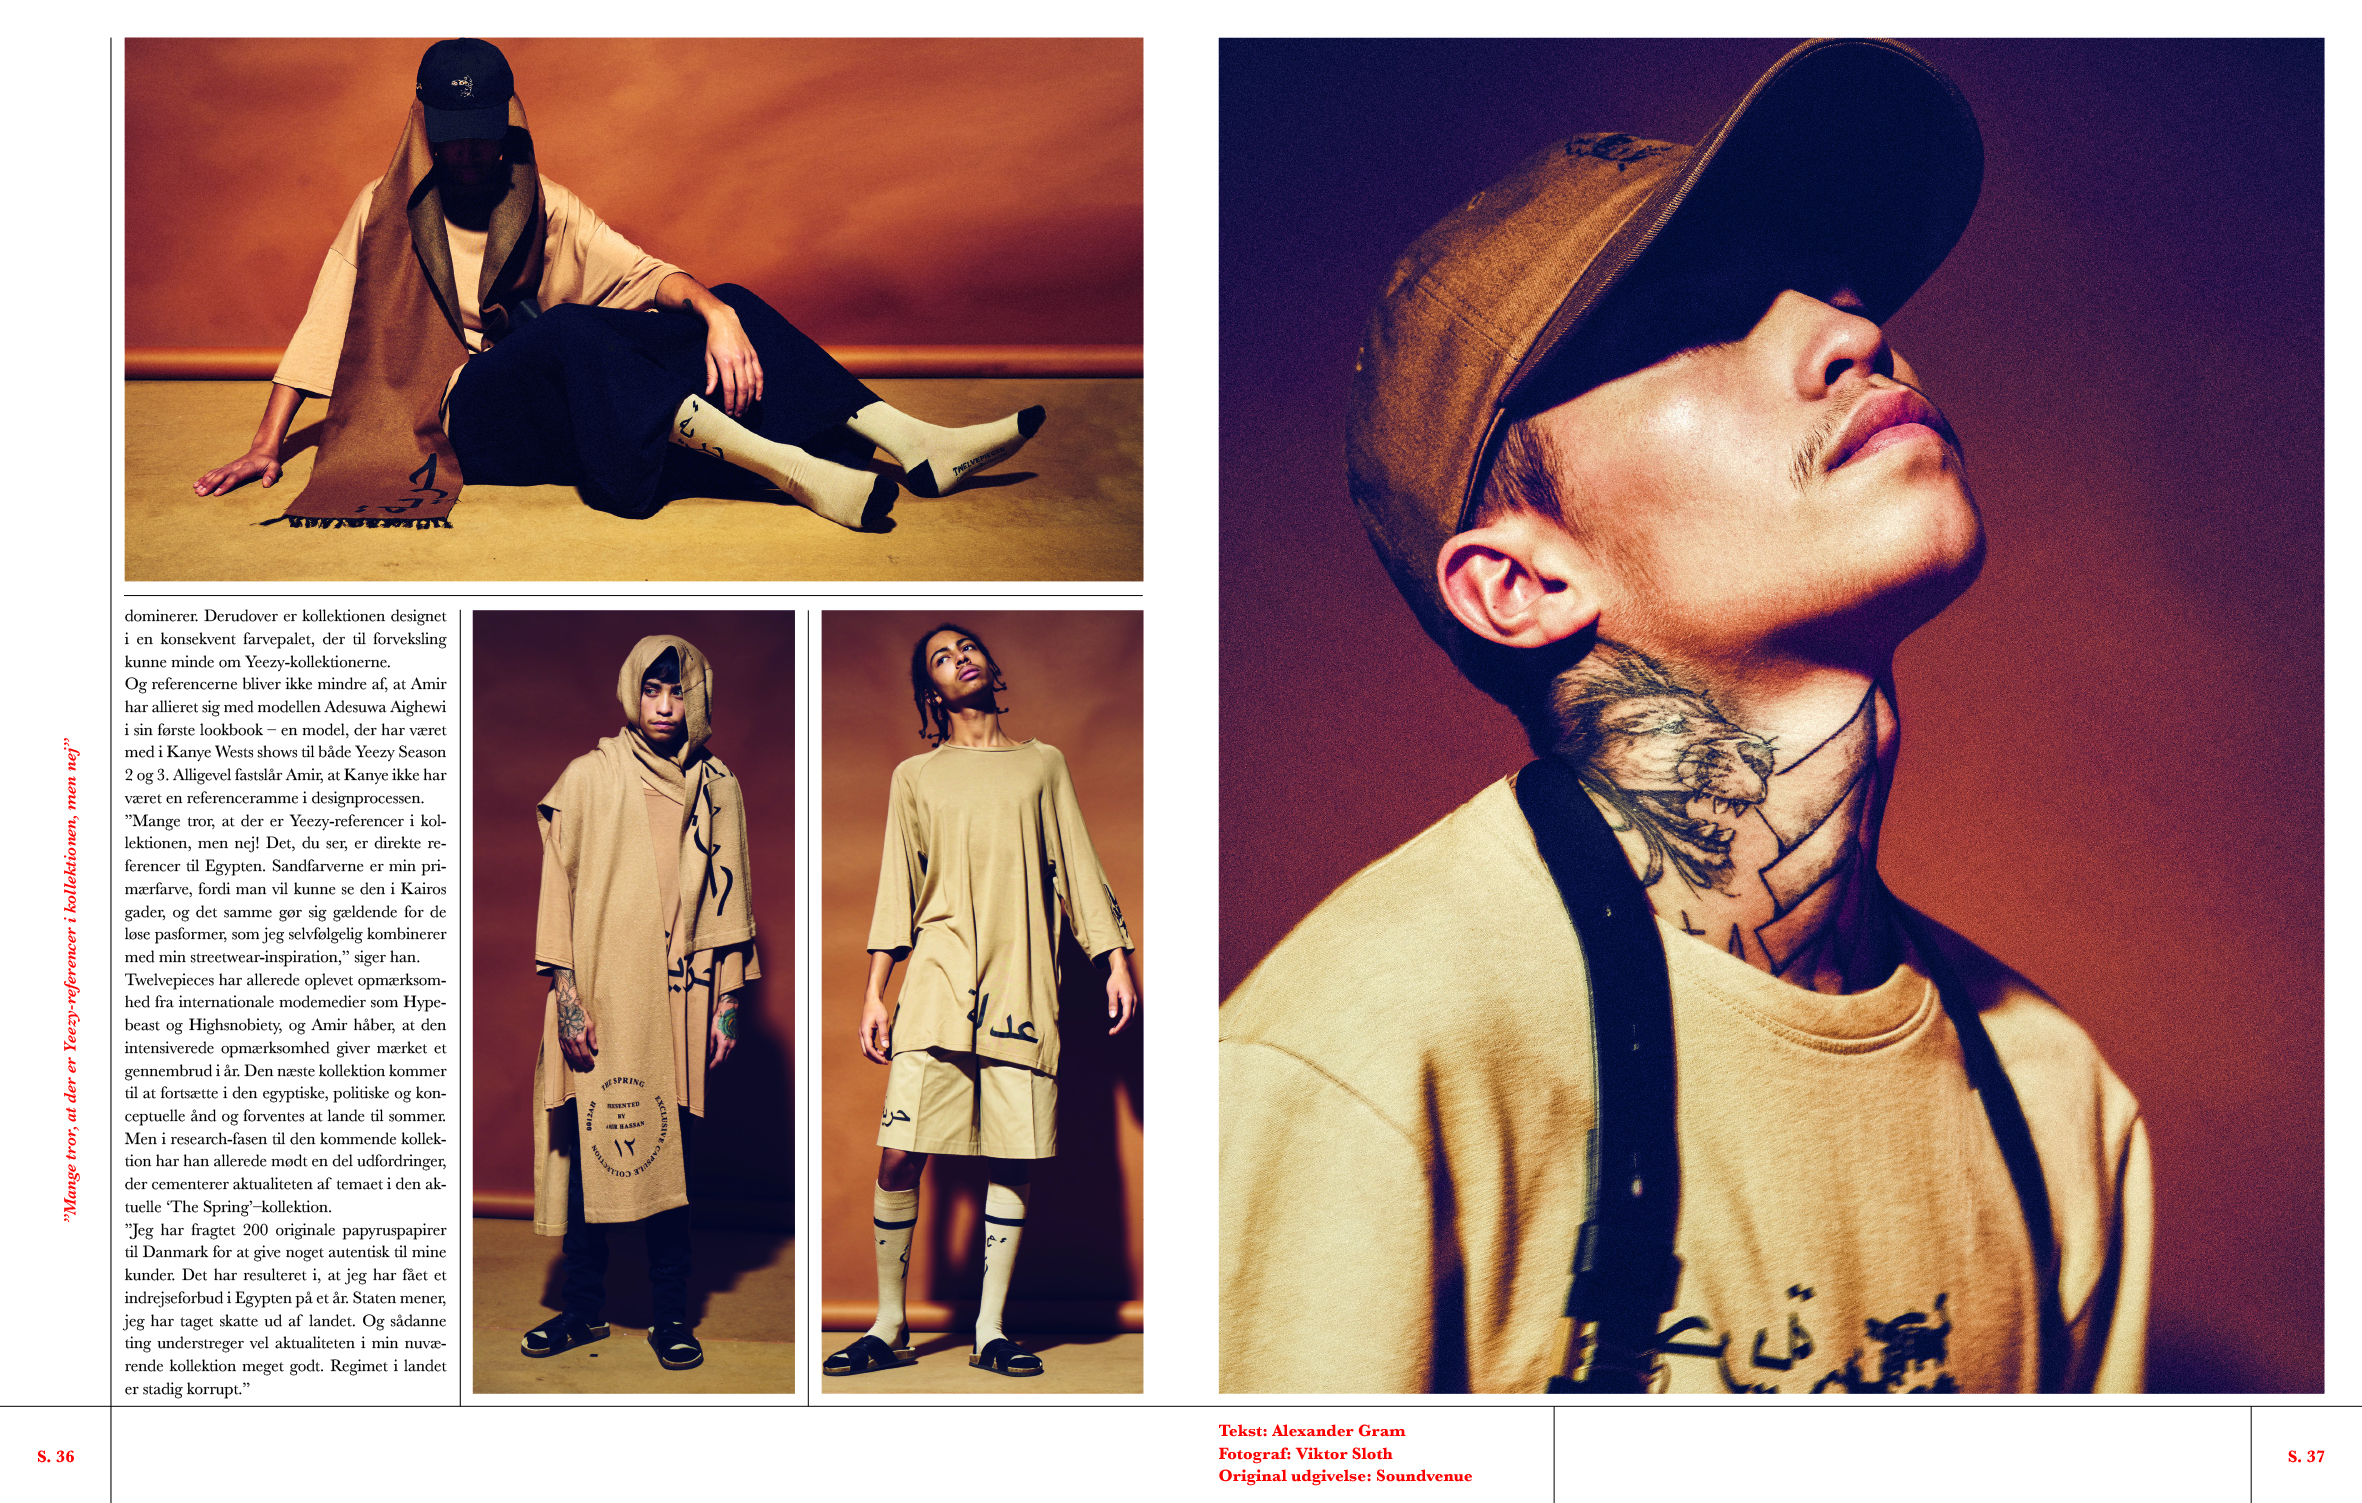 Grisk_Magasin_Issue1_2017_Tryk-19.jpg